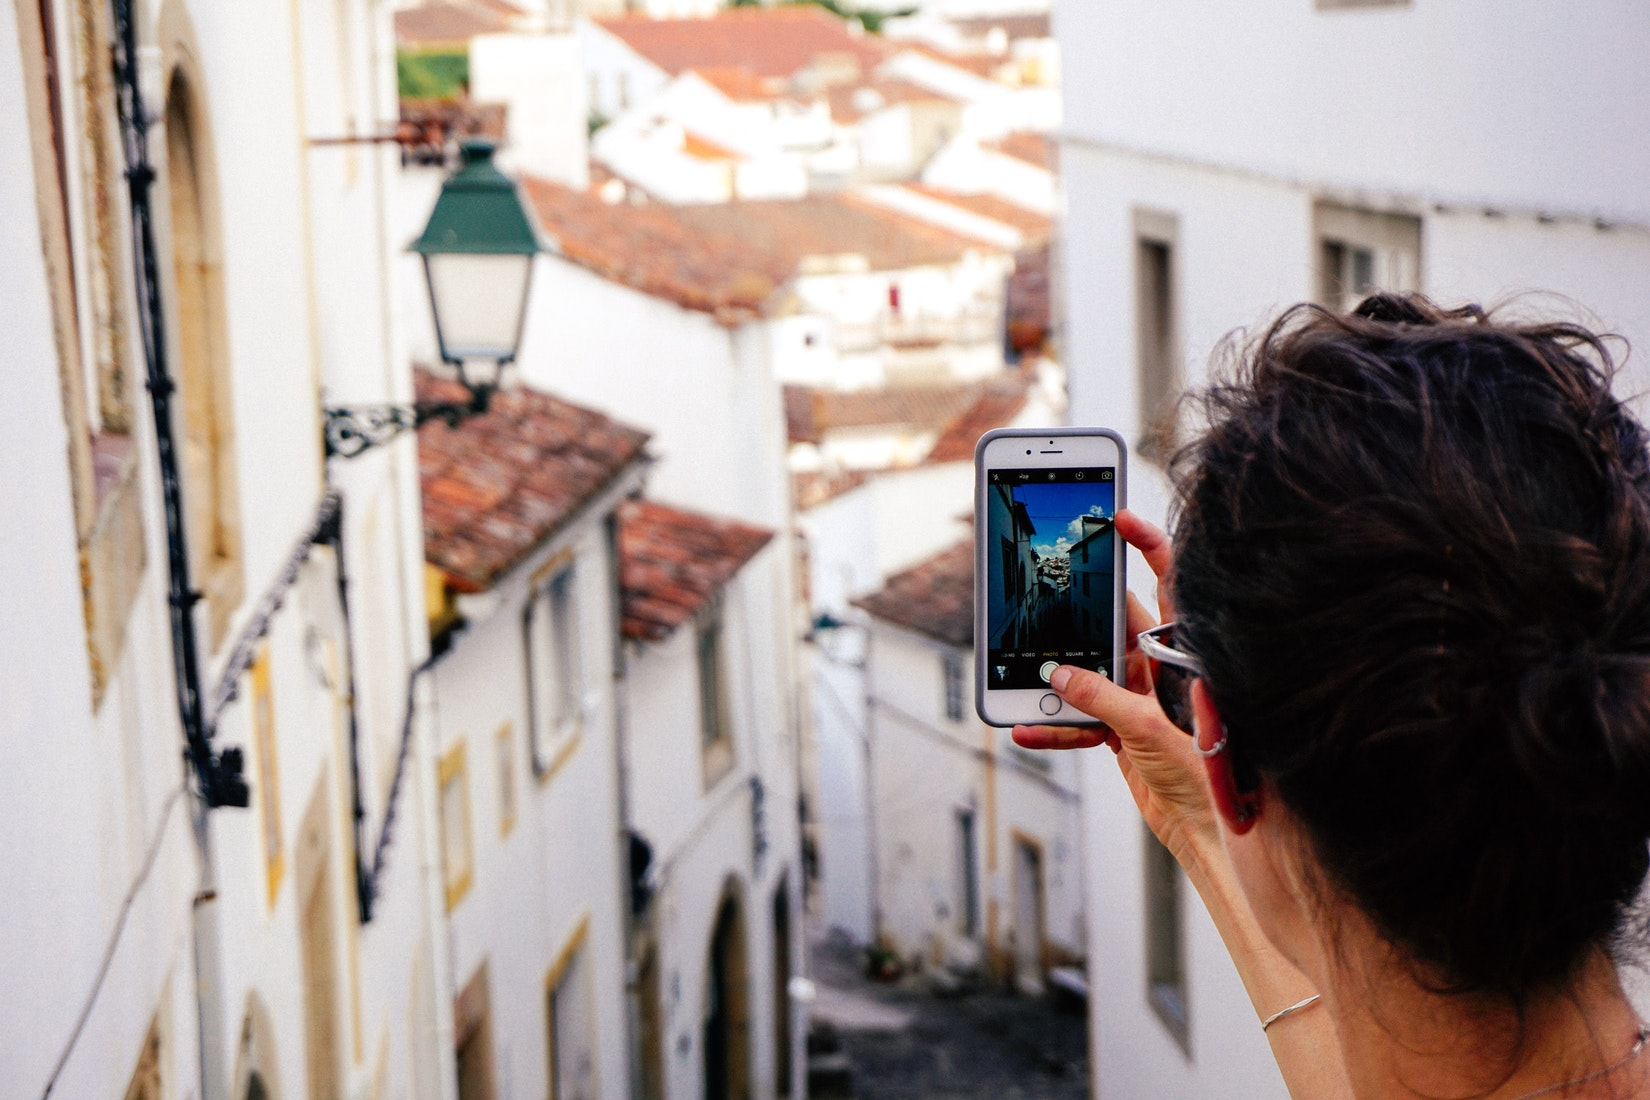 Taking photos of the white homes in Castelo de Vide